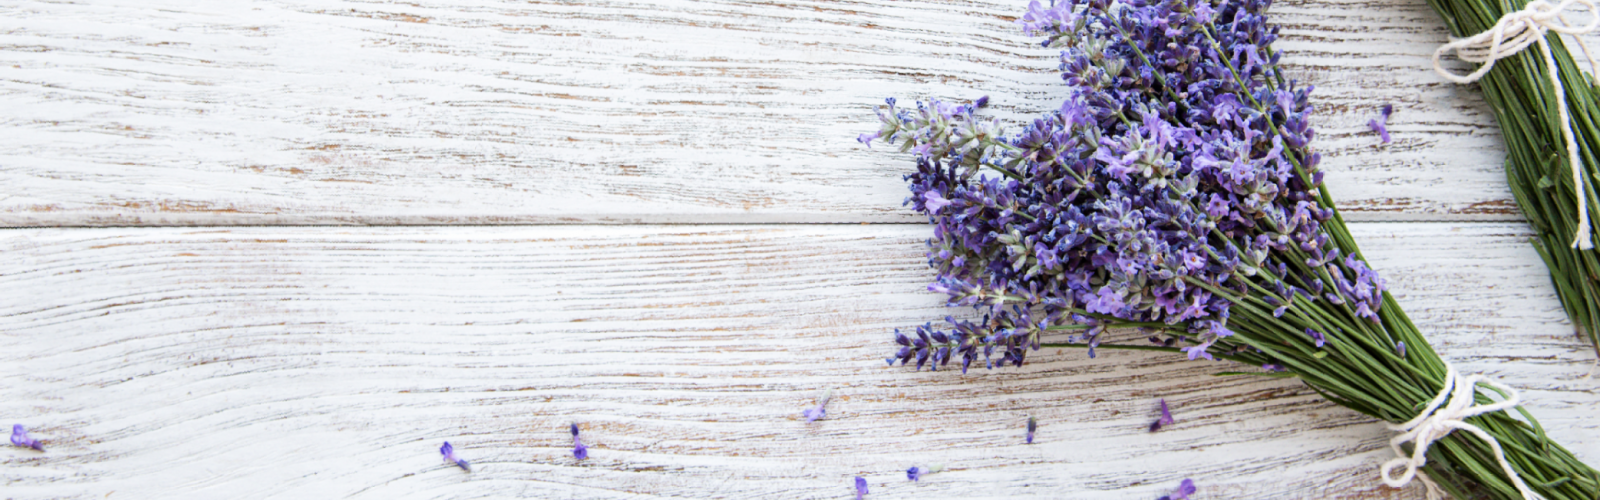 Fresh lavender flowers on wood background